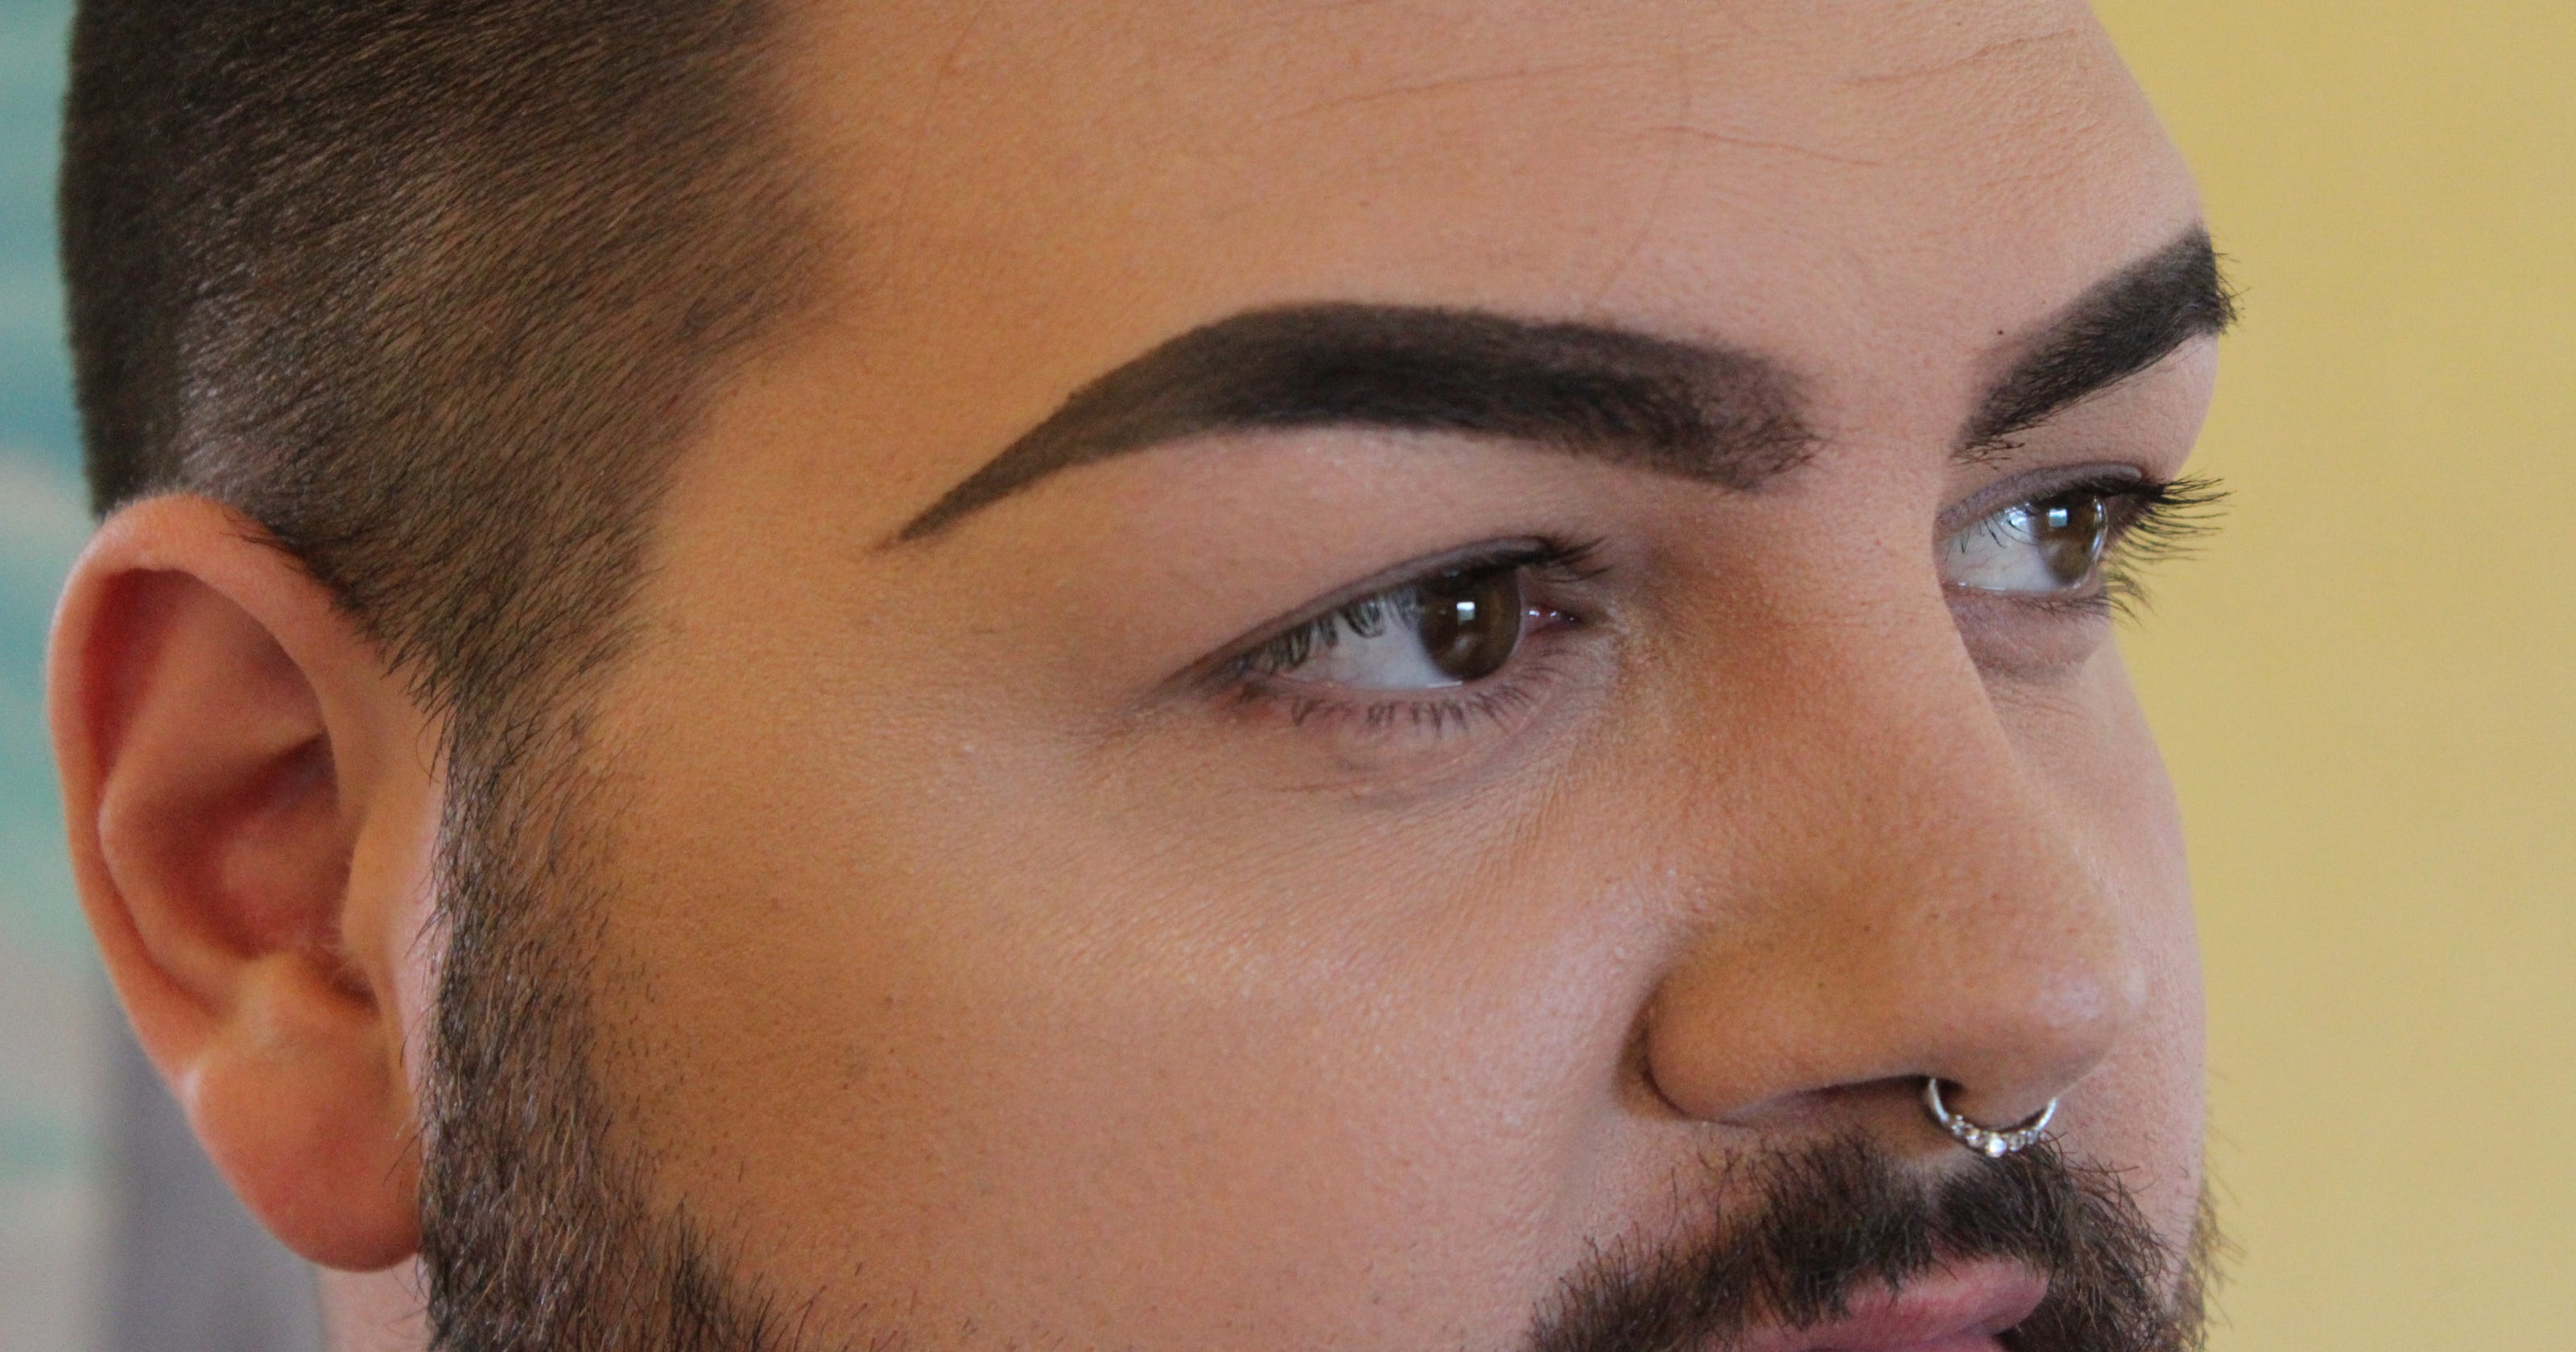 The Bolder The Better Eyebrow Trend Catches On In Brevard